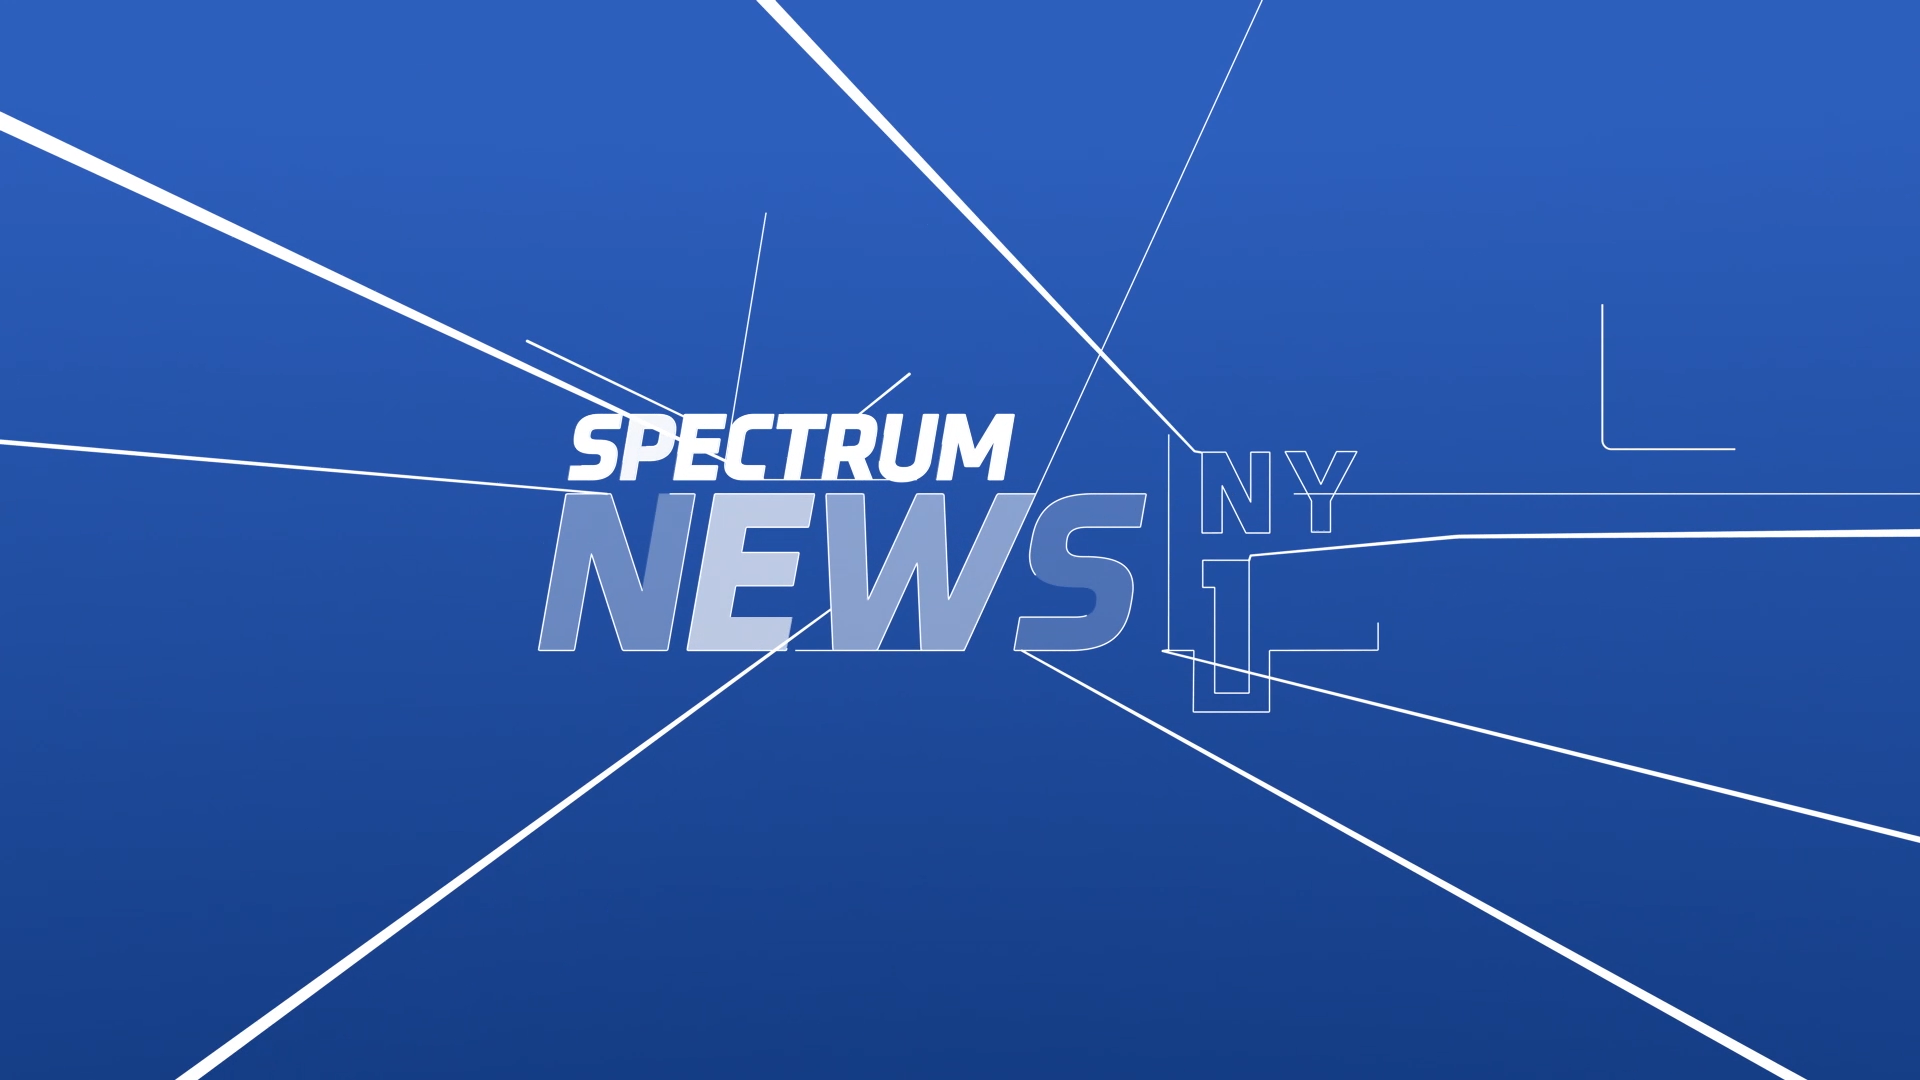 ncs_spectrum-news-motion-graphics_0001